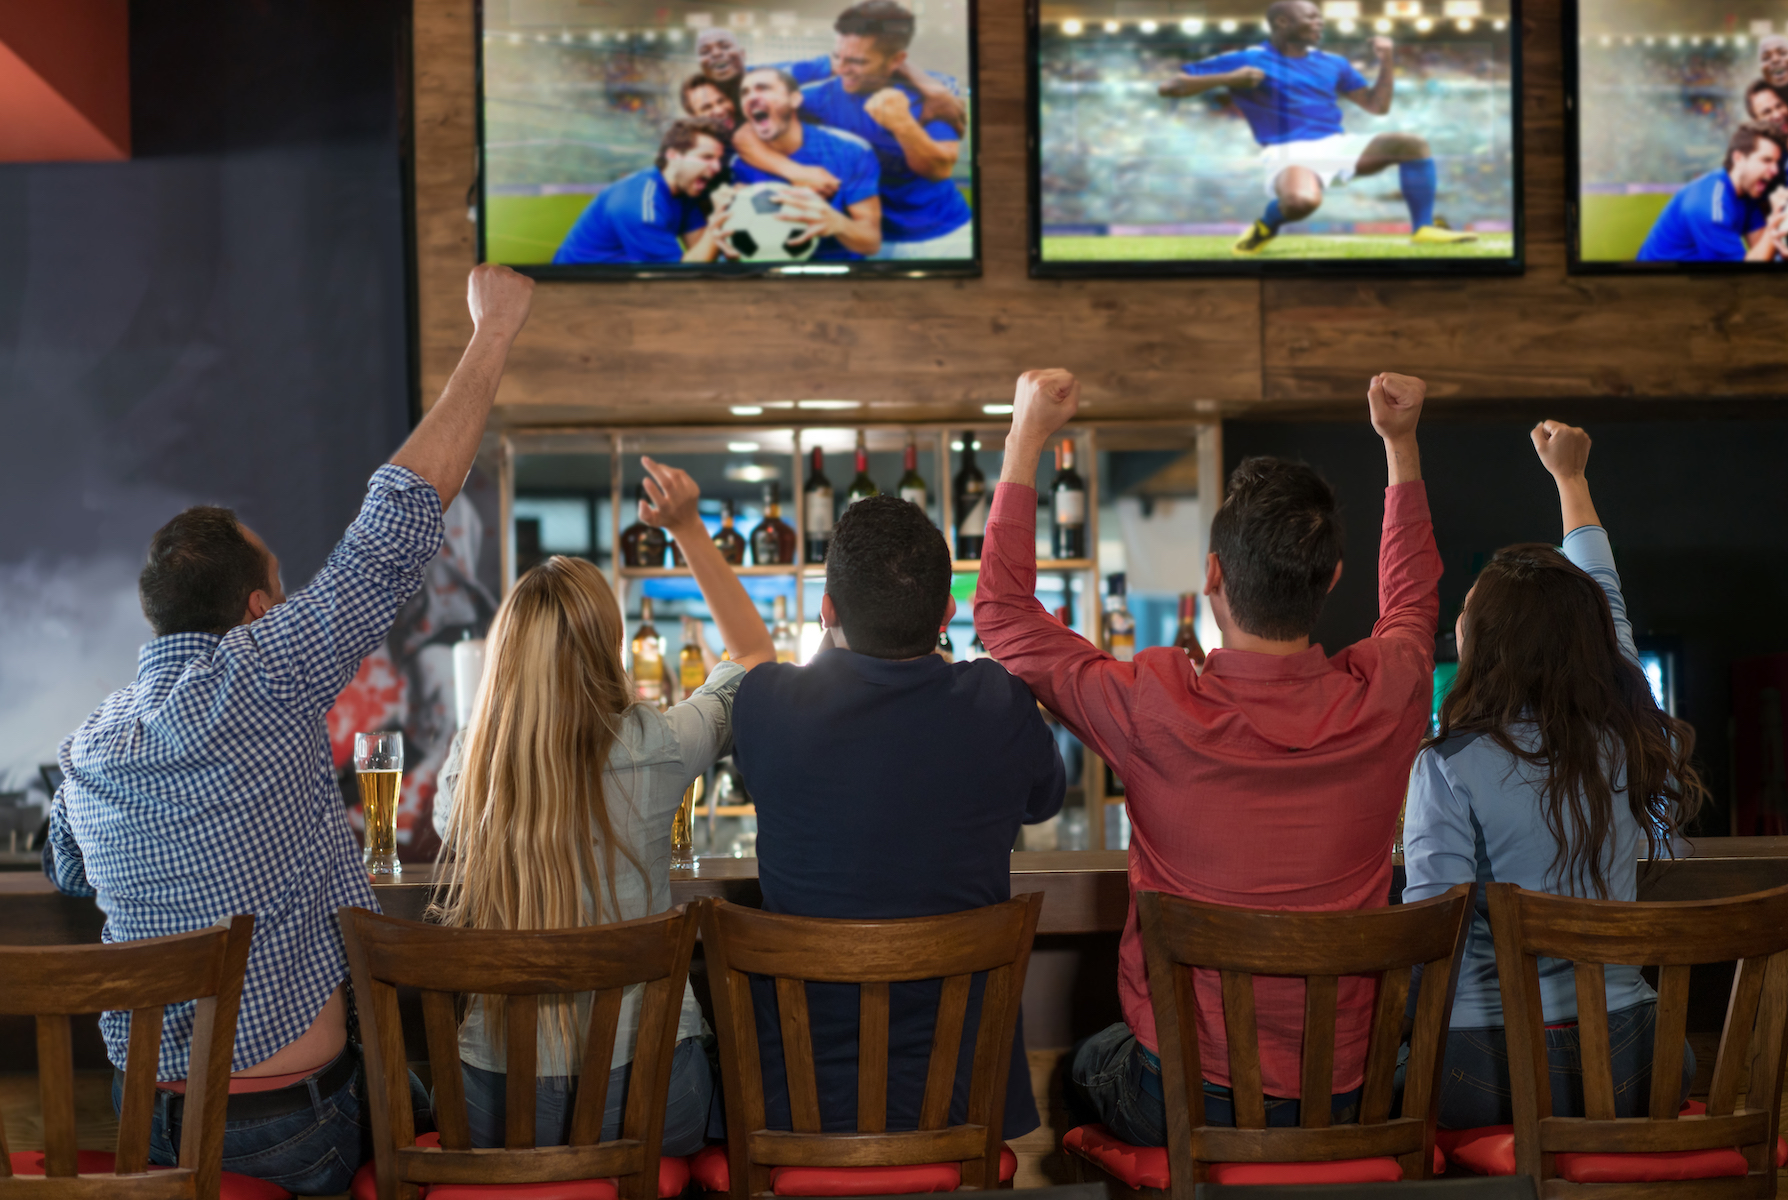 When it comes to what you play on your bar or restaurant's TV, digital signage and cable aren't your best bet.